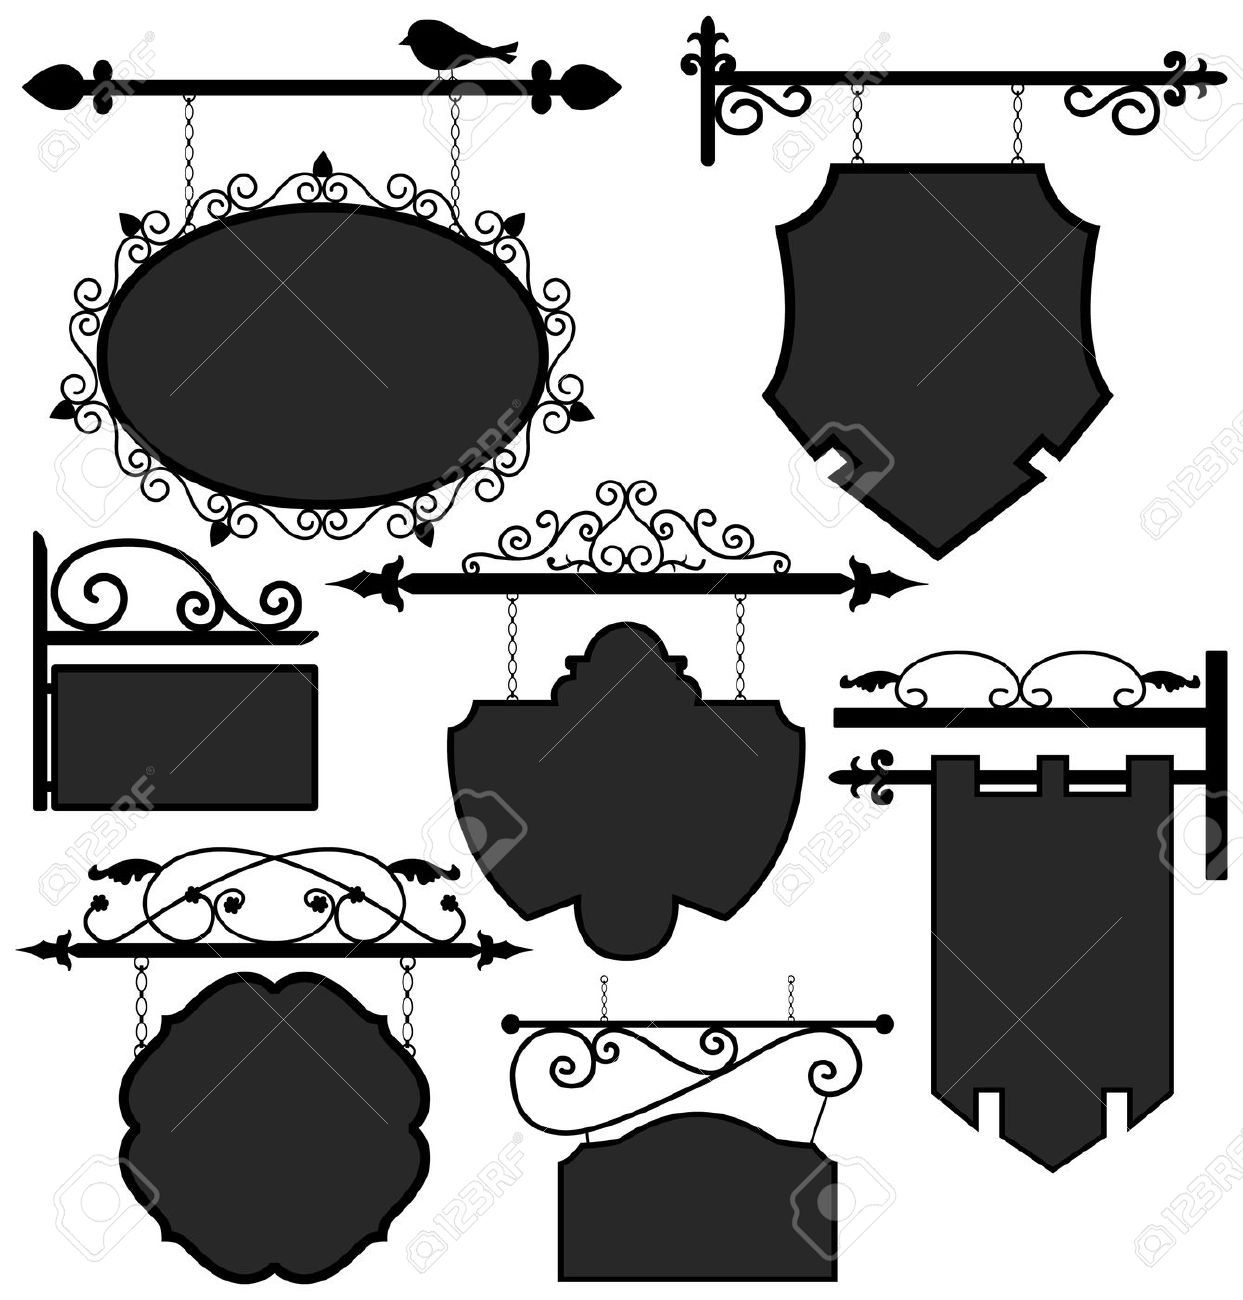 Medieval banner hanging from a pole clipart svg freeuse library awning storefront clipart - Google Search | Cute Clipart and ... svg freeuse library